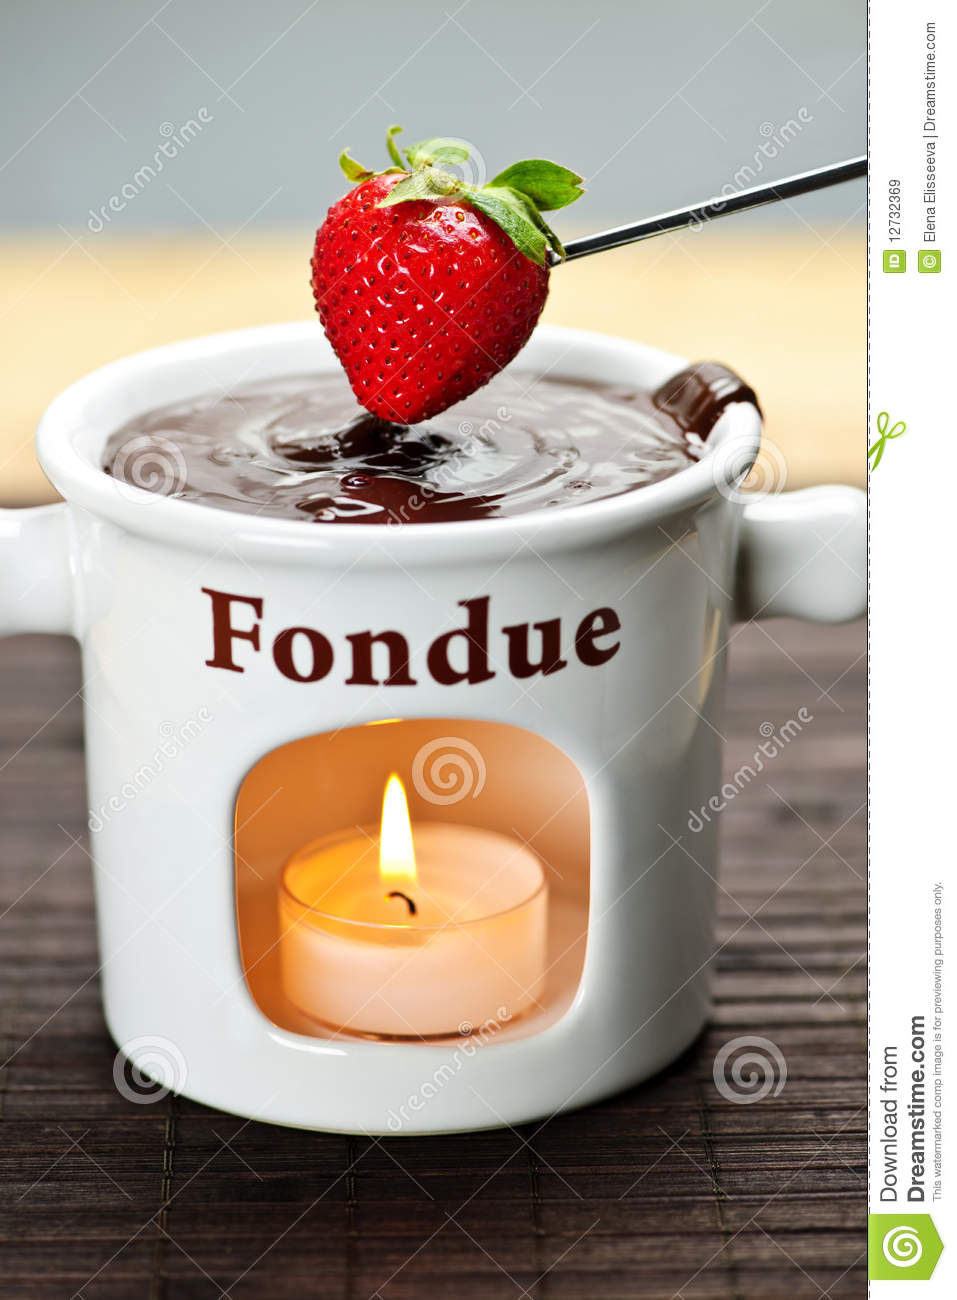 Strawberry Dipped In Chocolate Fondue Stock Image Image